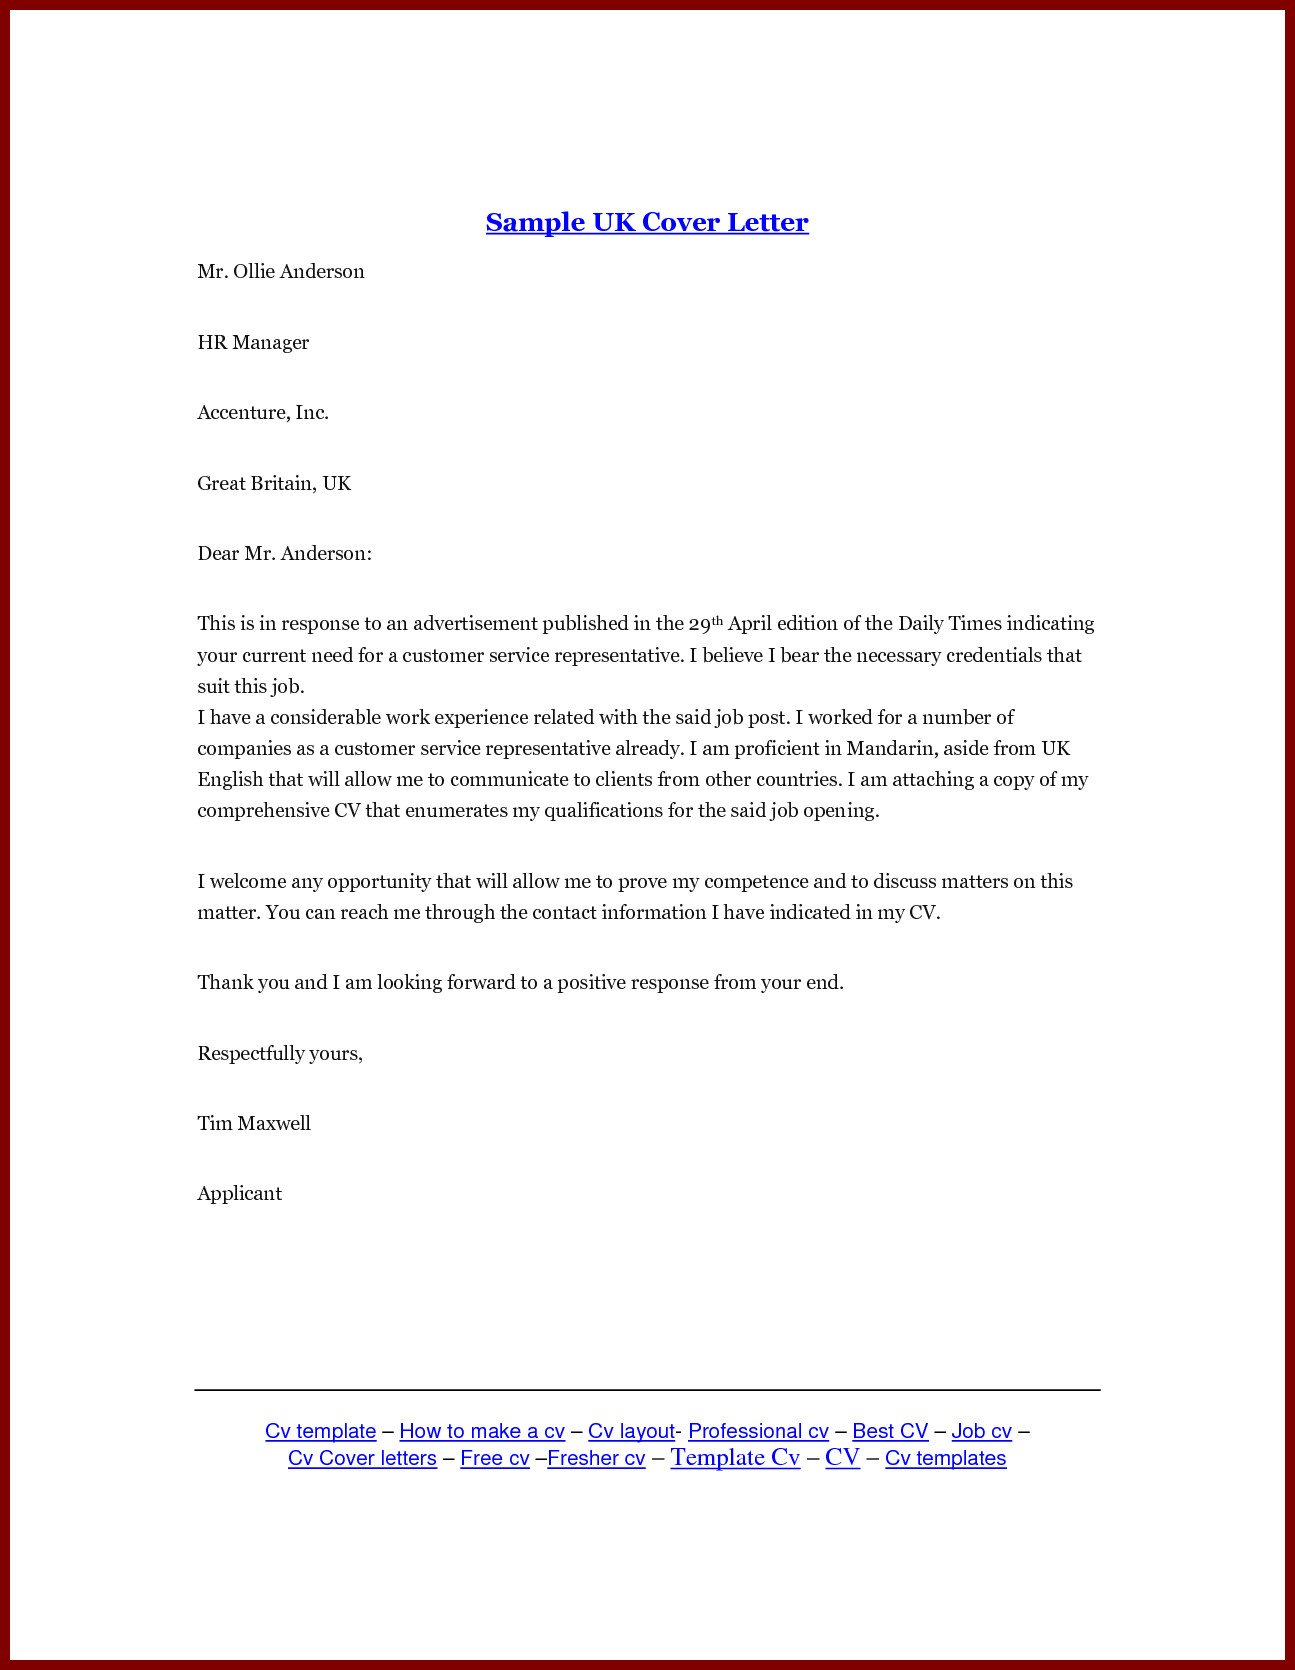 Job Application Letter Template - Cover Letter Lab Technician Always Use A Convincing Job Application